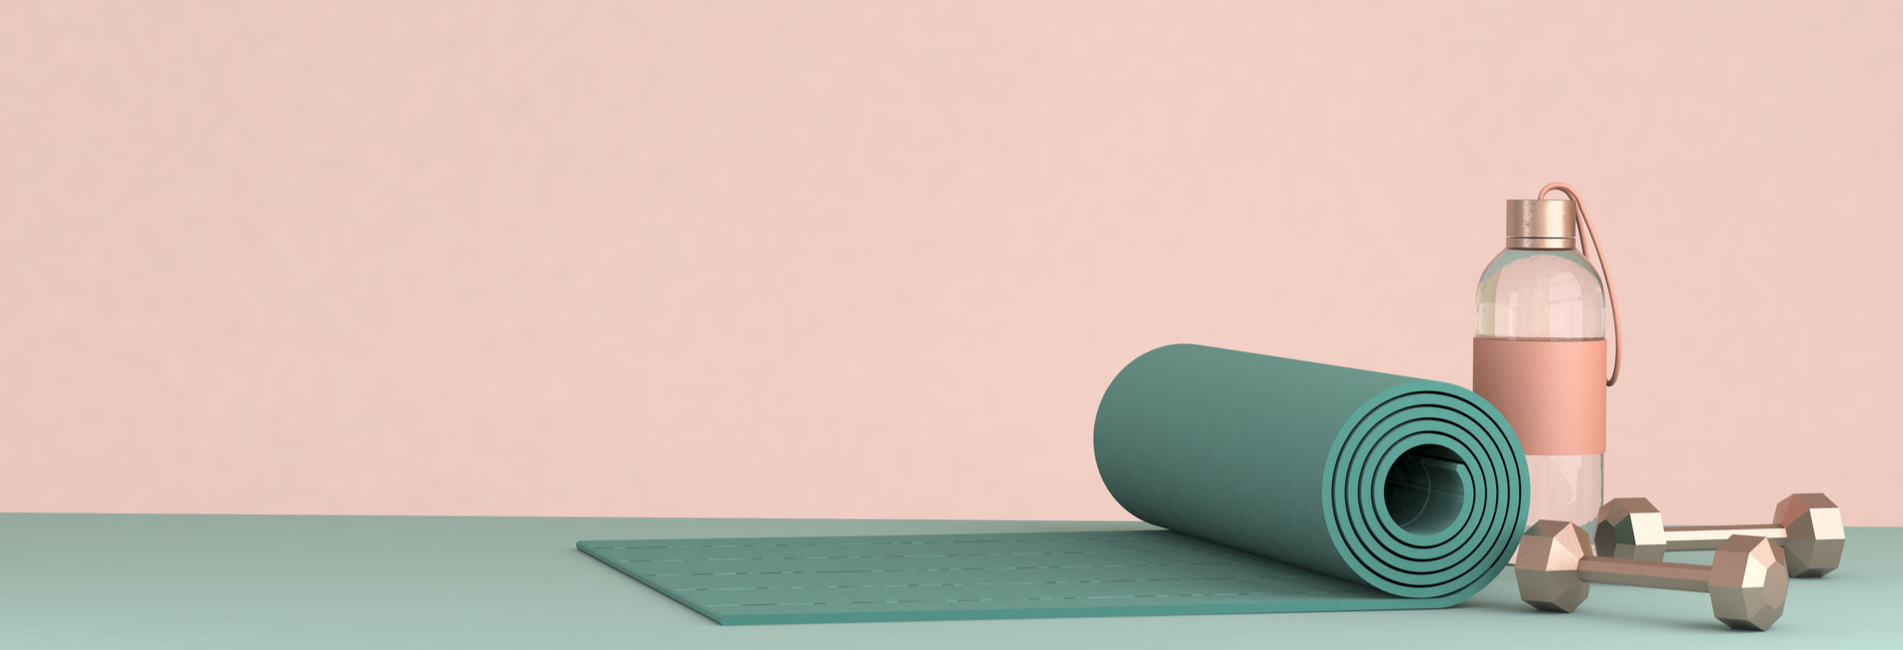 Yoga for Substance Abuse and Addiction Treatment - Resurgence - An image of a yoga mat, dumbells, and a water bottle as yoga for substance abuse is a healthy coping mechanism for addiction treatment.